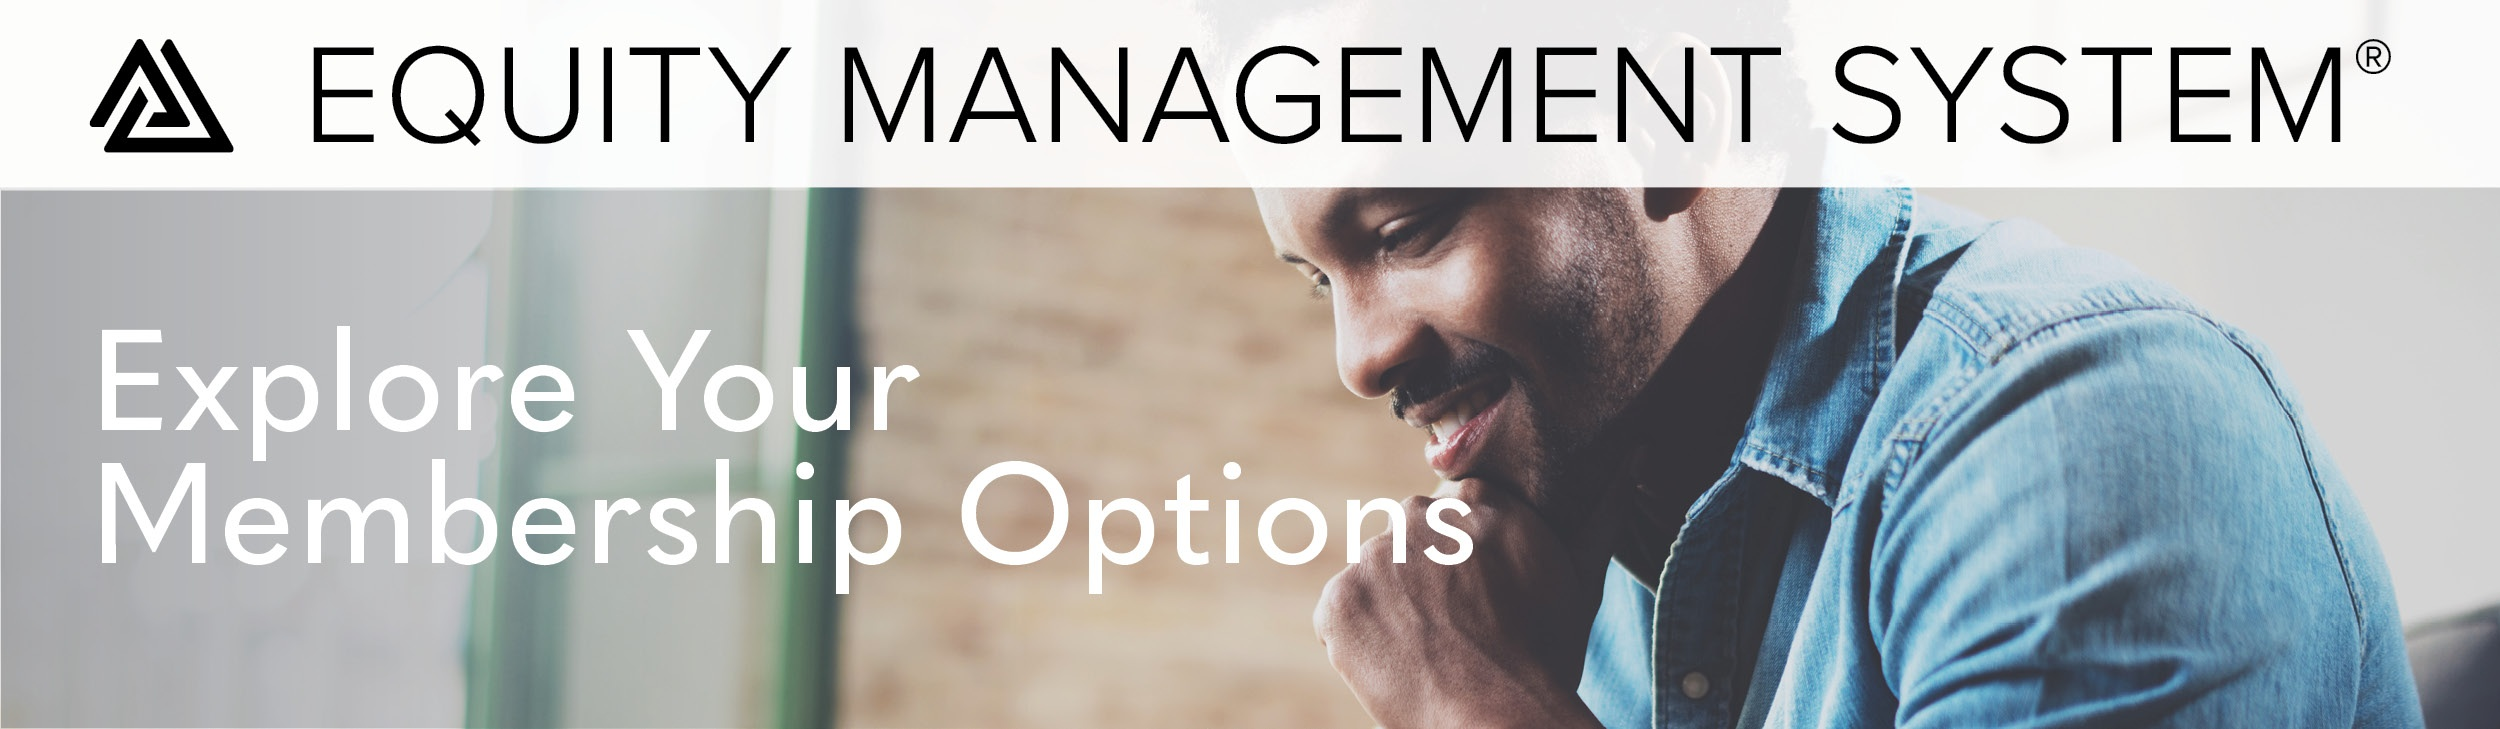 Explore the Equity Management System